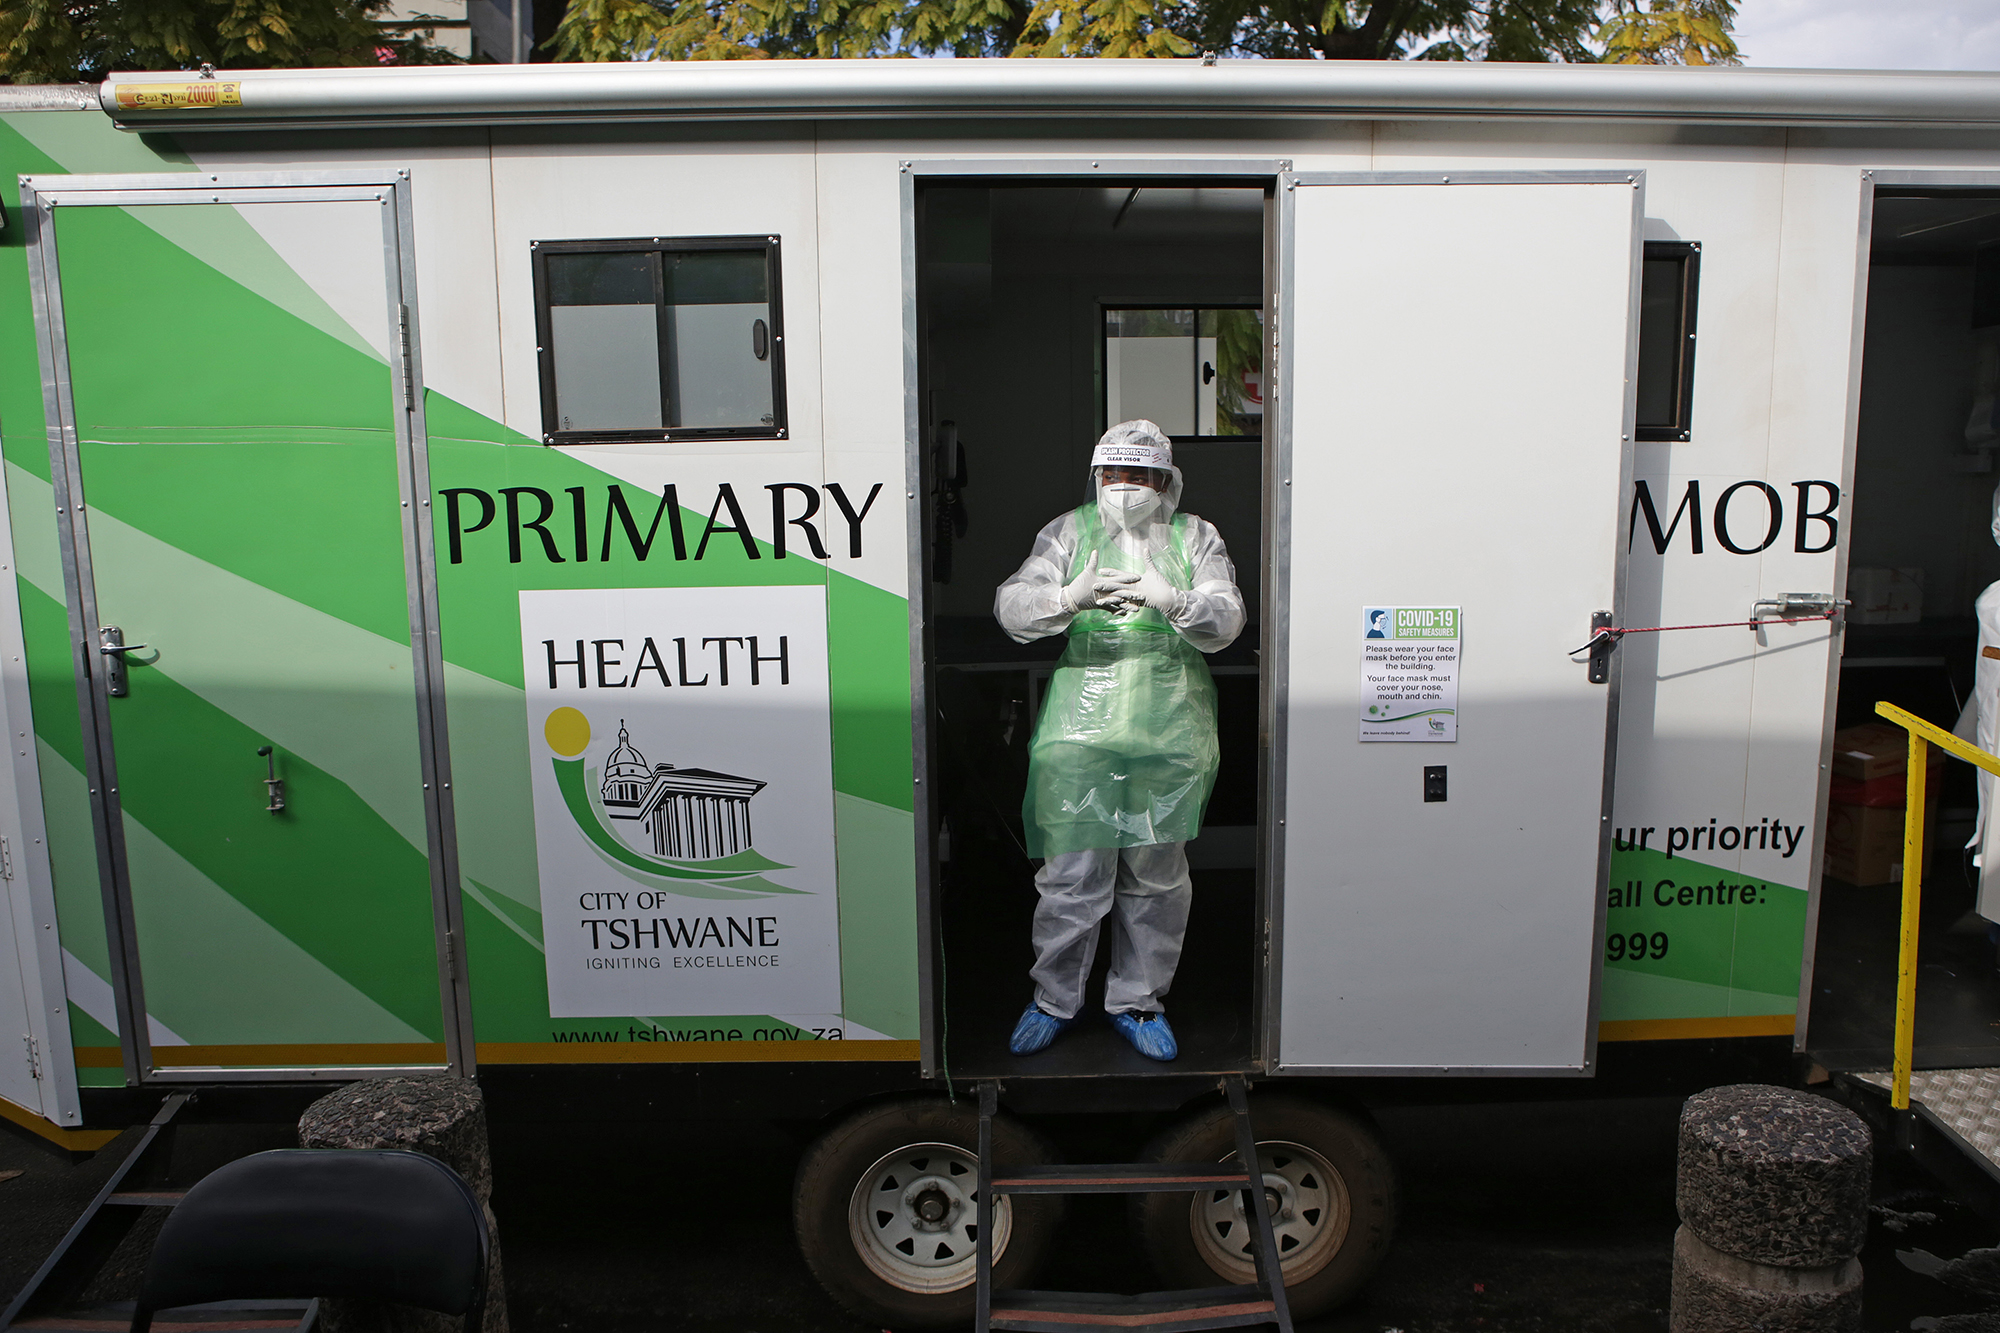 A City of Tshwane Health official stands at the mobile testing unit while waiting to conduct tests for the COVID-19 coronavirus at the Bloed Street Mall in Pretoria Central Business District, on June 11, 2020.